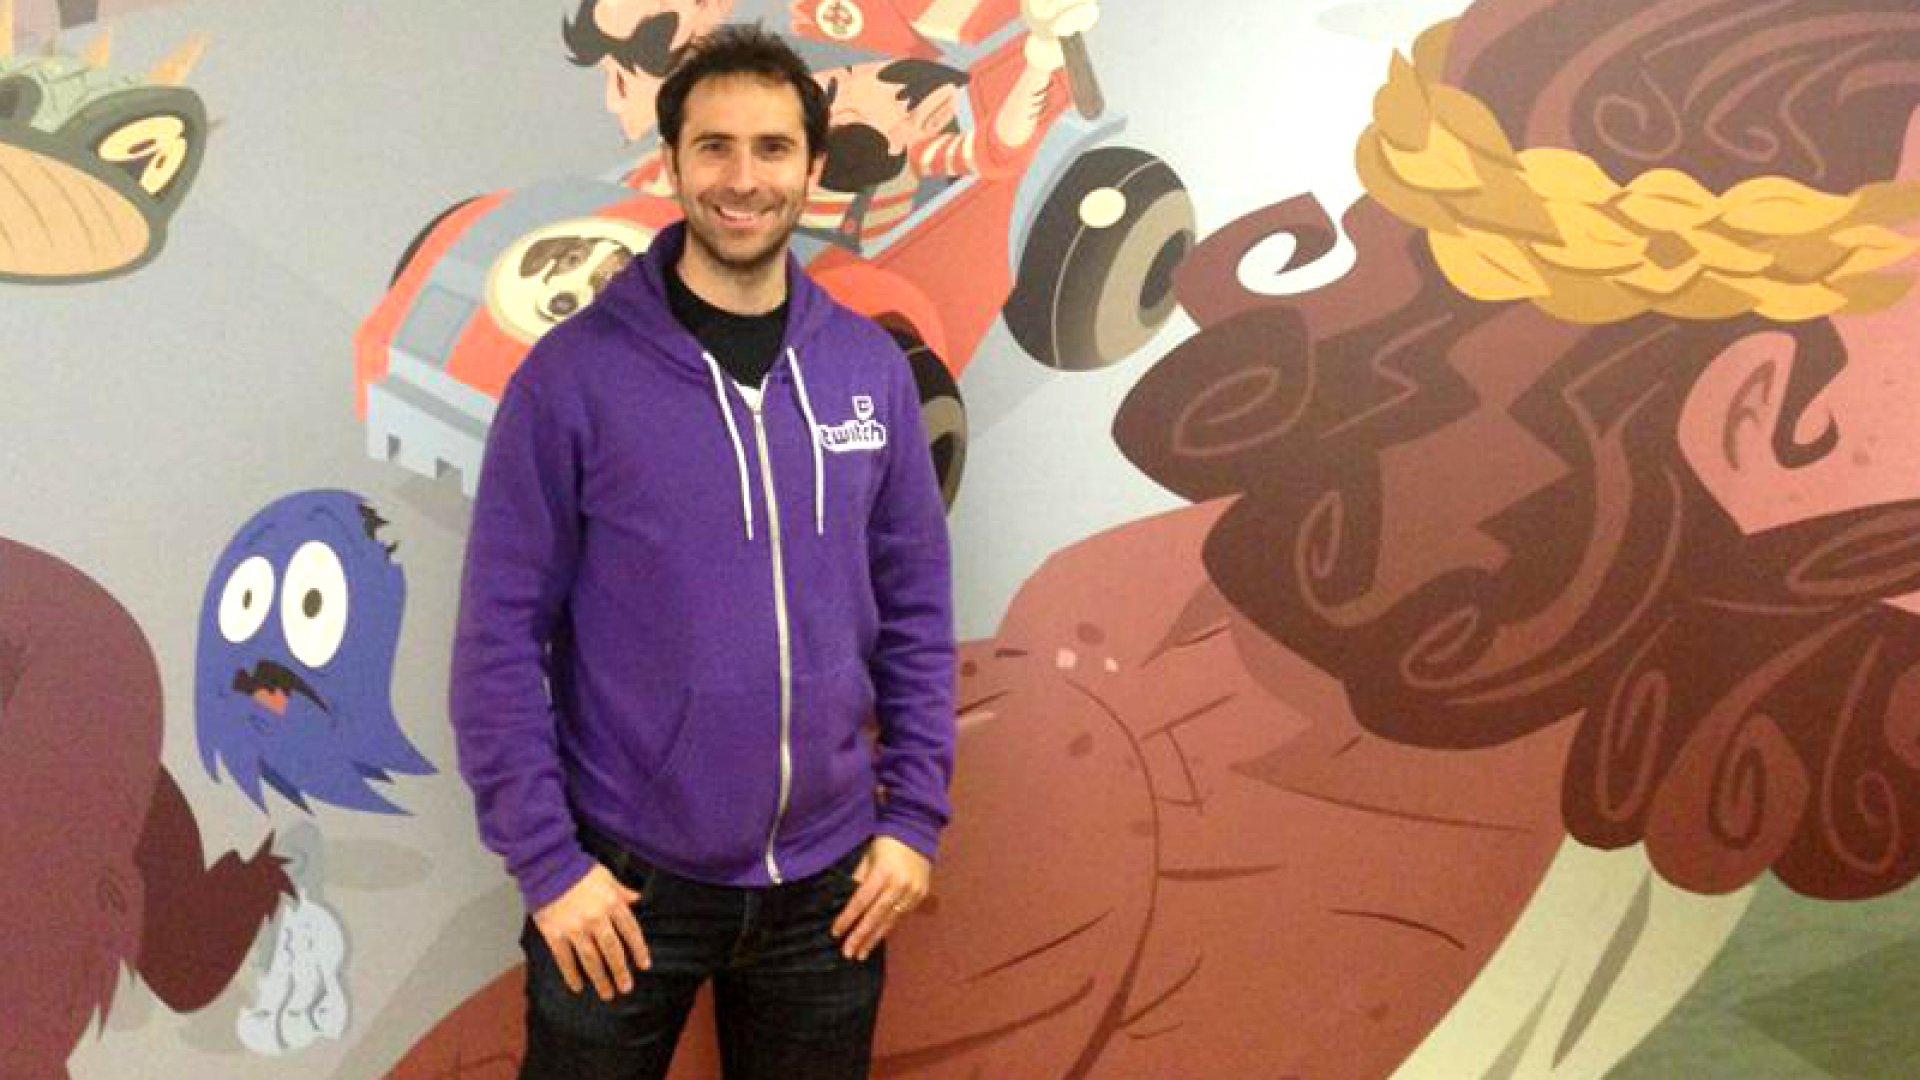 How Twitch's Co-Founder Turned a Serious Gaming Habit Into a Billion-Dollar Business